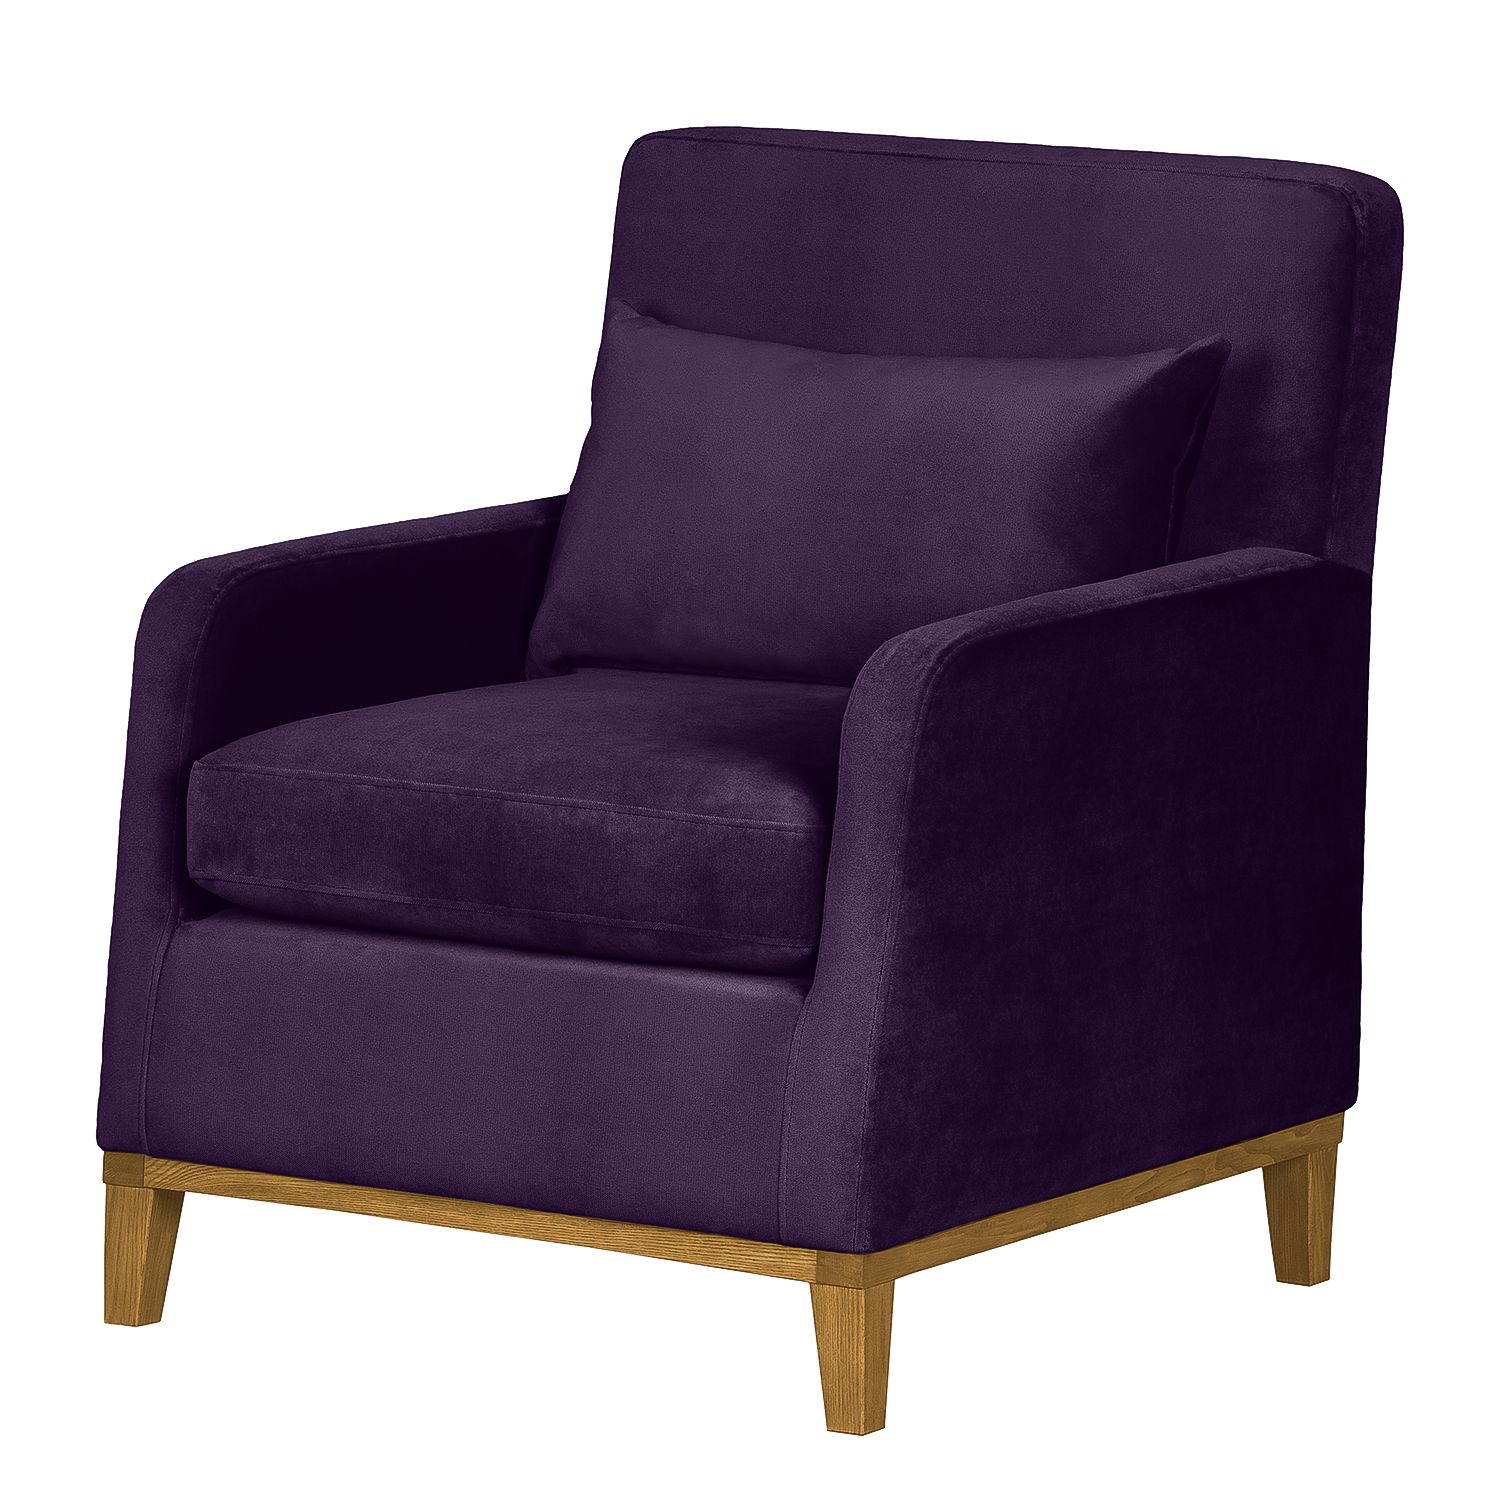 Fauteuil Blomma - Velours mauve - Chêne, Jack and Alice